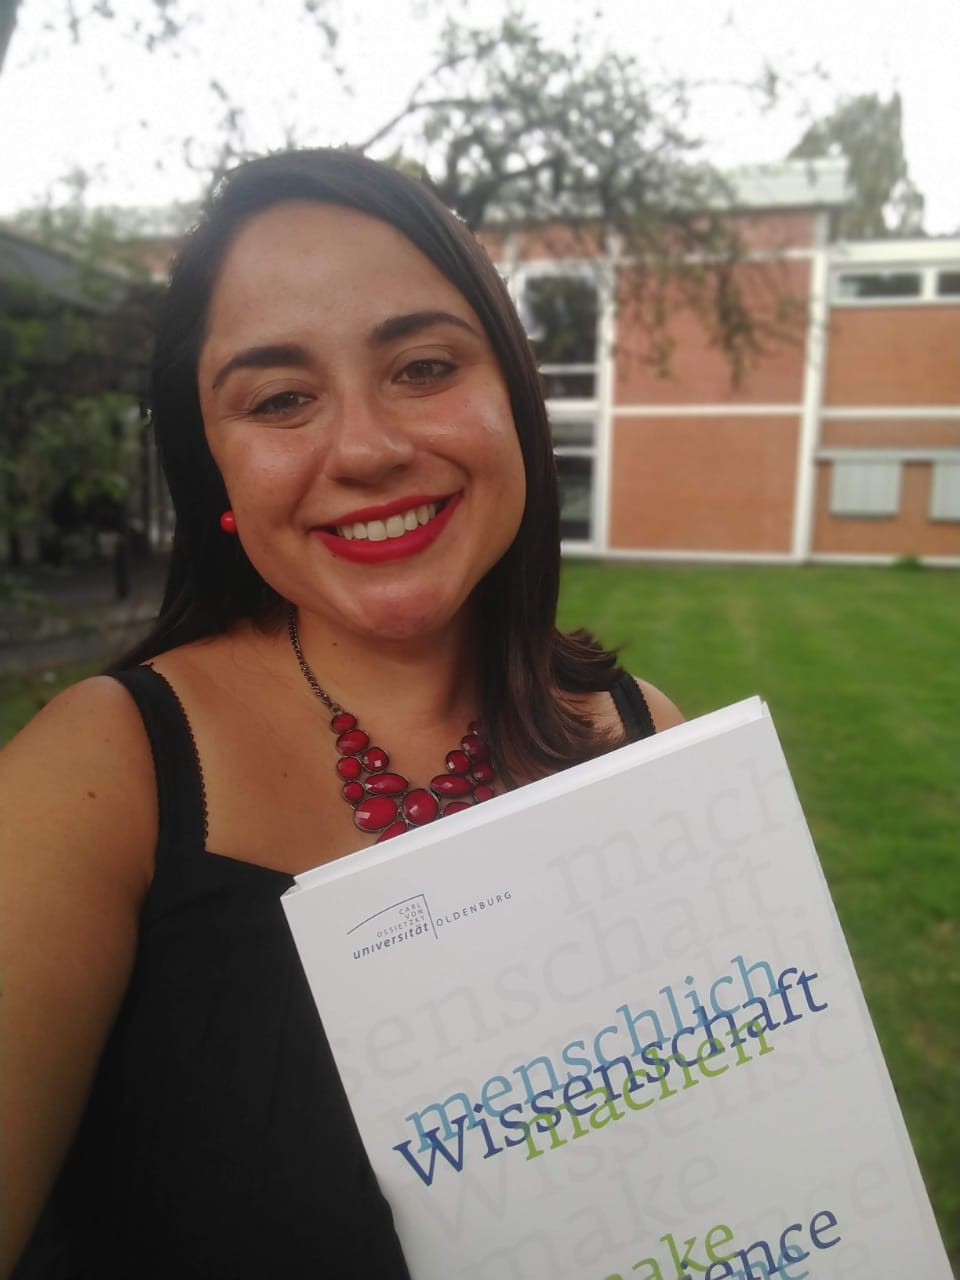 Young woman taking a selfie holding her diploma and smiling.